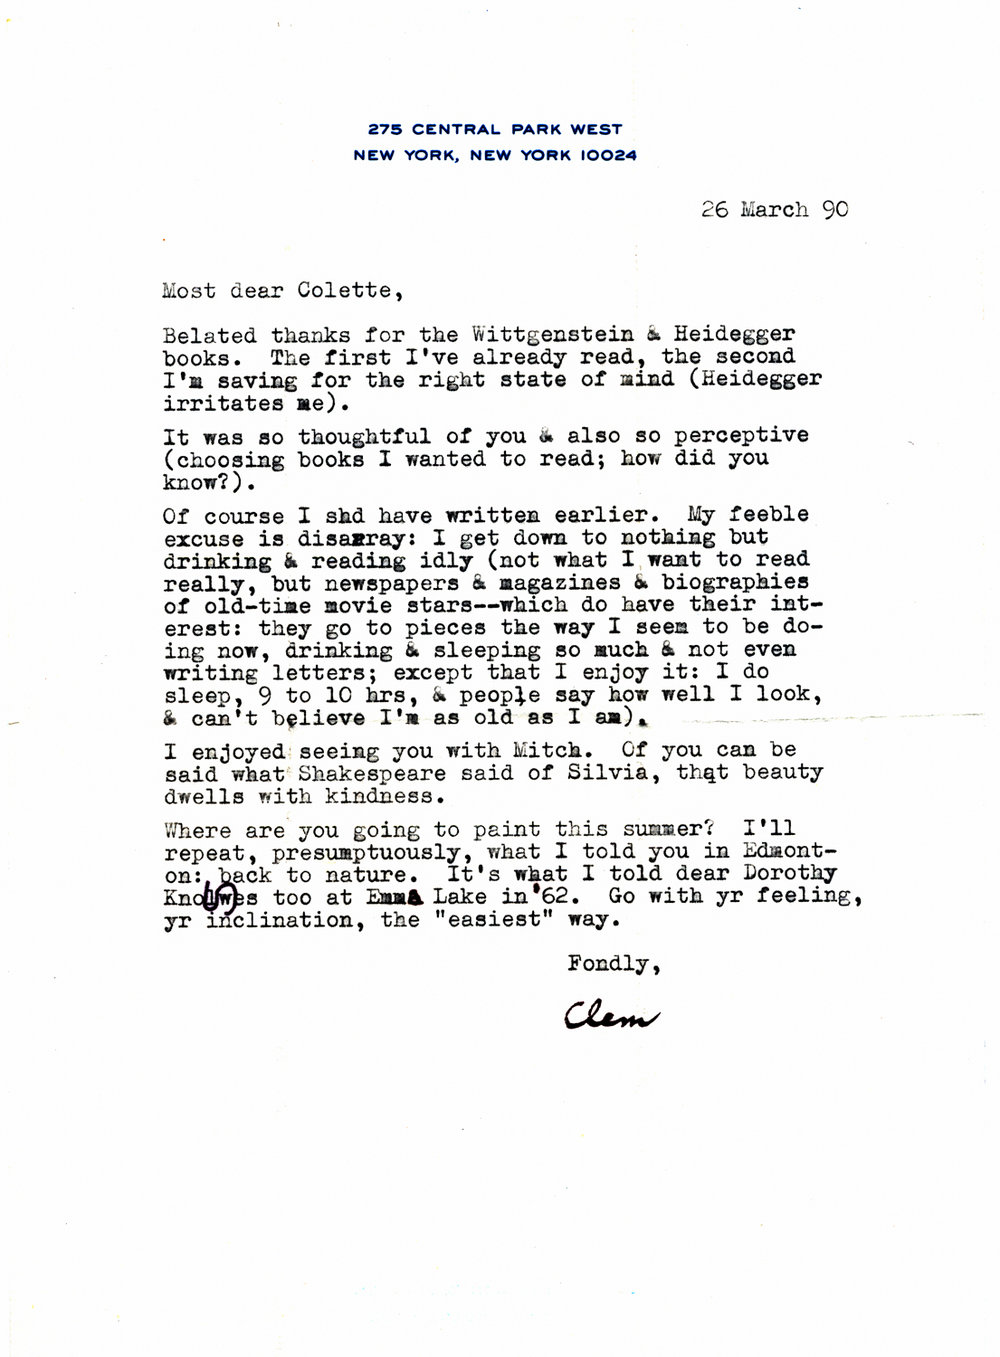 1990 Clement Greenberg letter